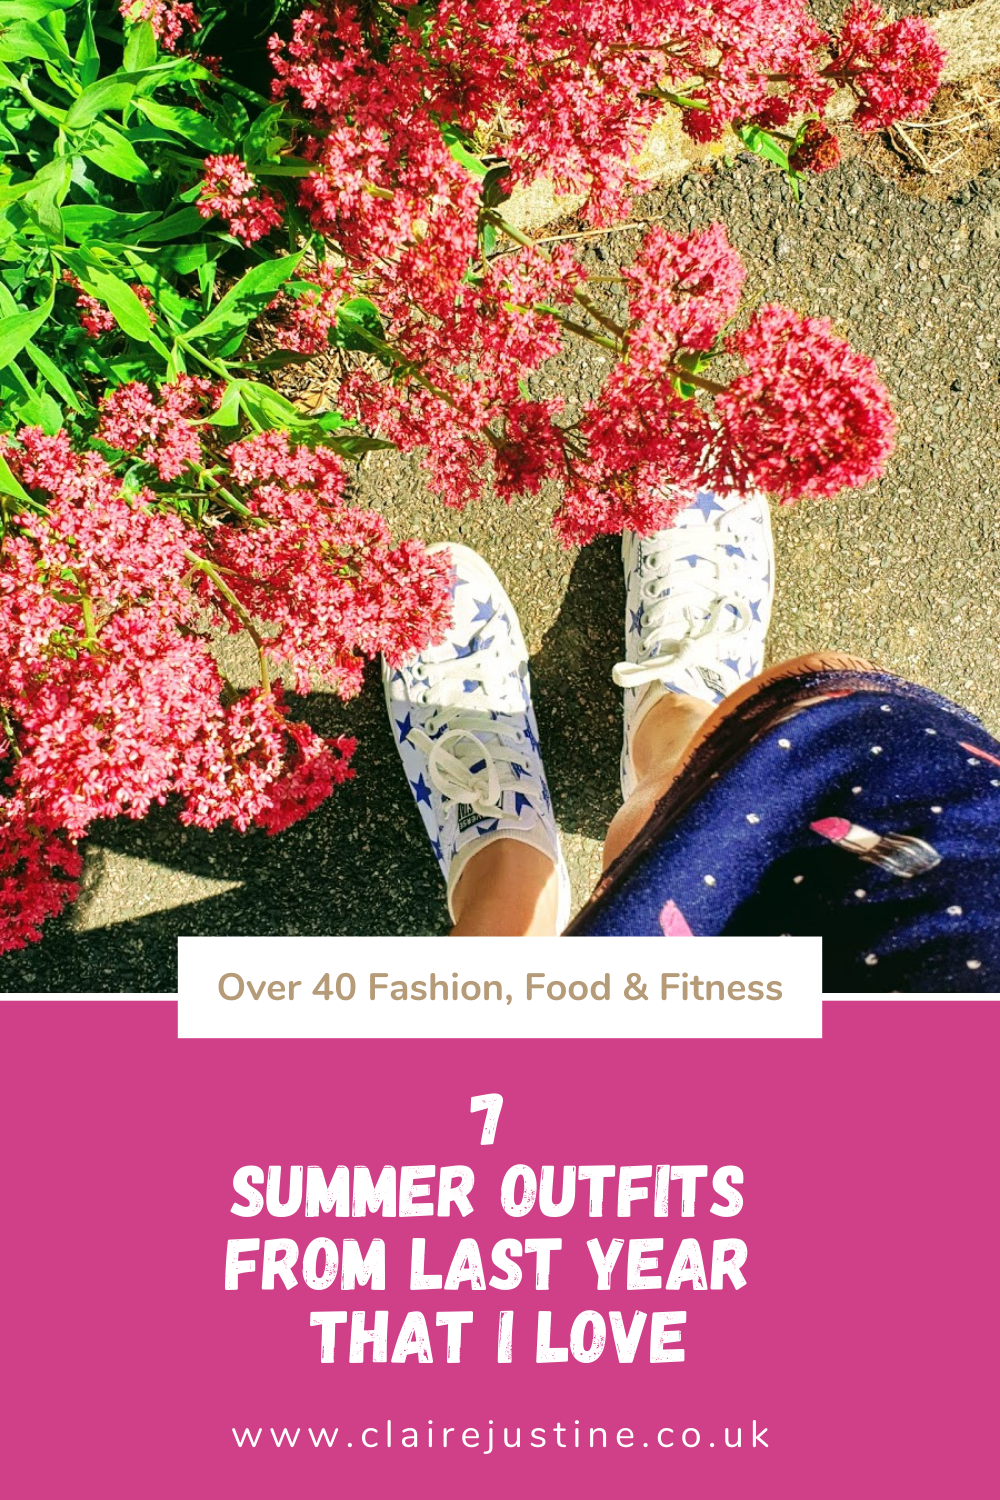 7 Summer Outfits From Last Year That I Love.